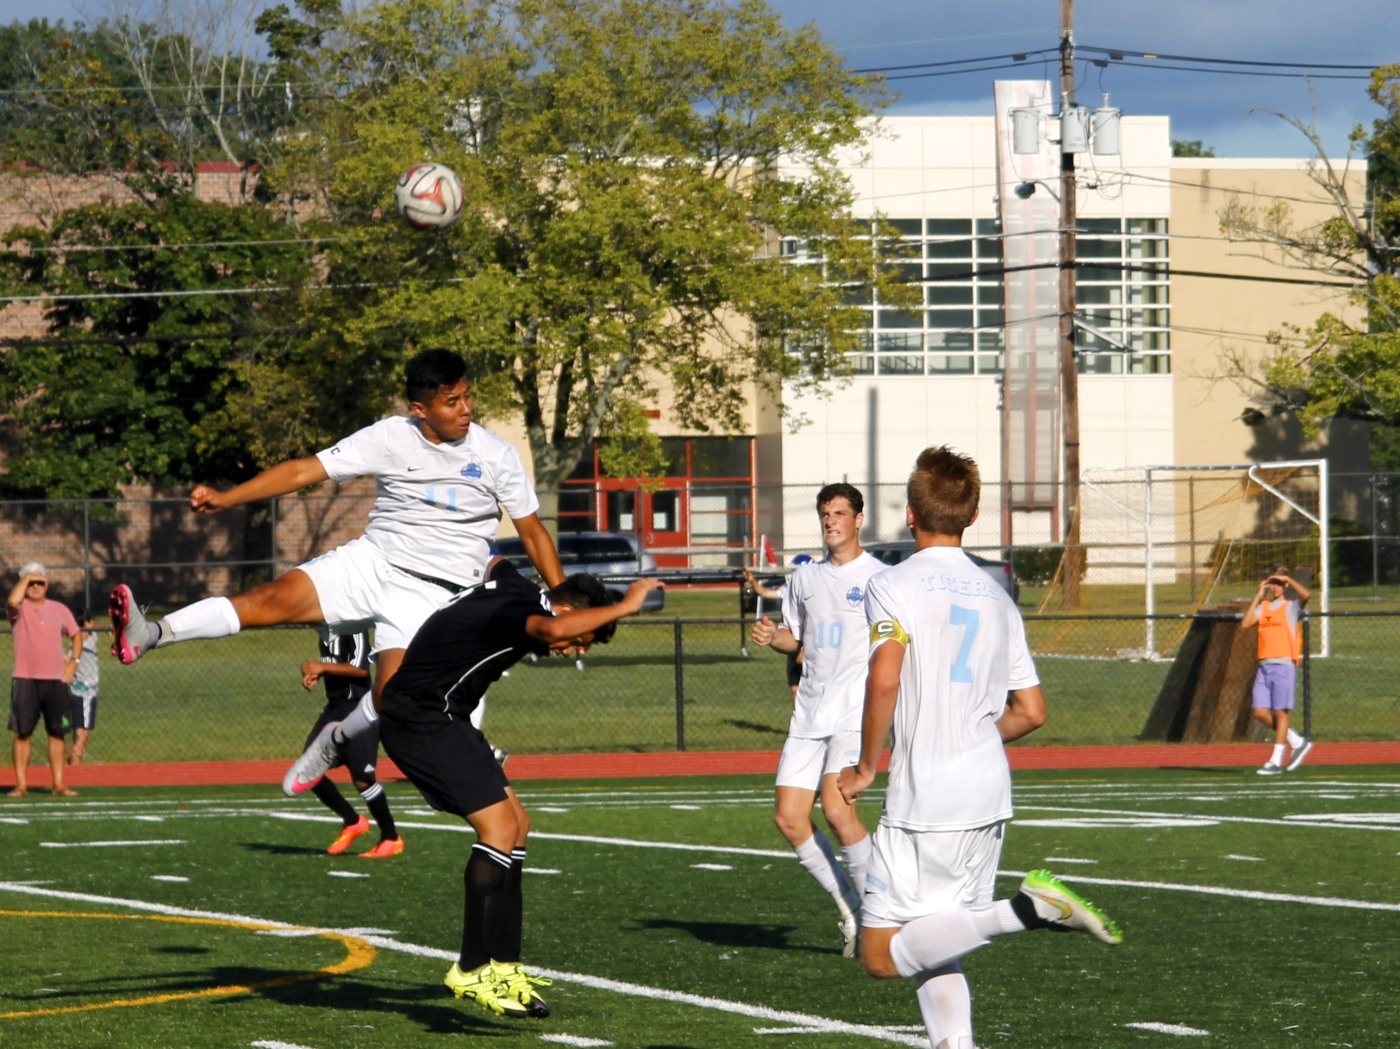 photo: Ashley Dart Co-Captains Pete Luther '16 (right) and Cole Synder '16 (center) look to assist Edgar Morales '16 (left) against Trenton Central High School on Friday, September 11 at the PHS turf. The team won 4–1.